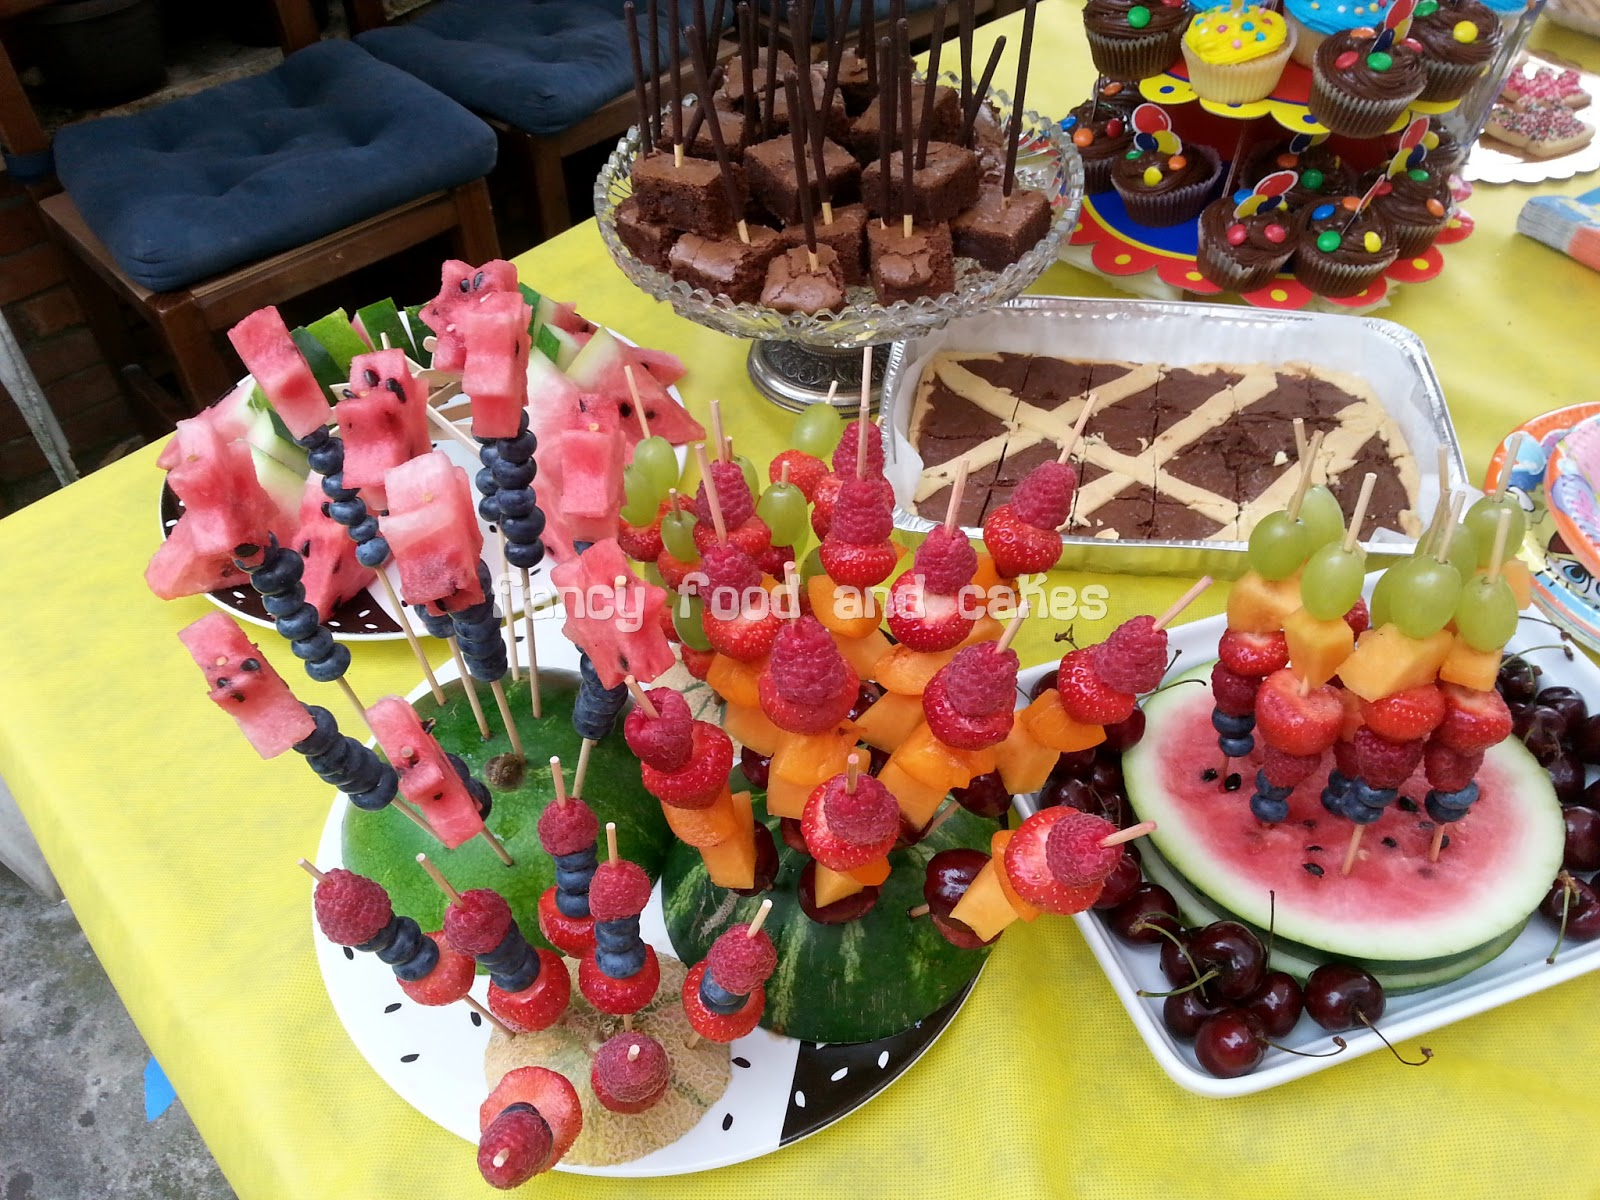 abbastanza fancy food & cakes: Buffet per un compleanno estivo - Buffet for a  UL92